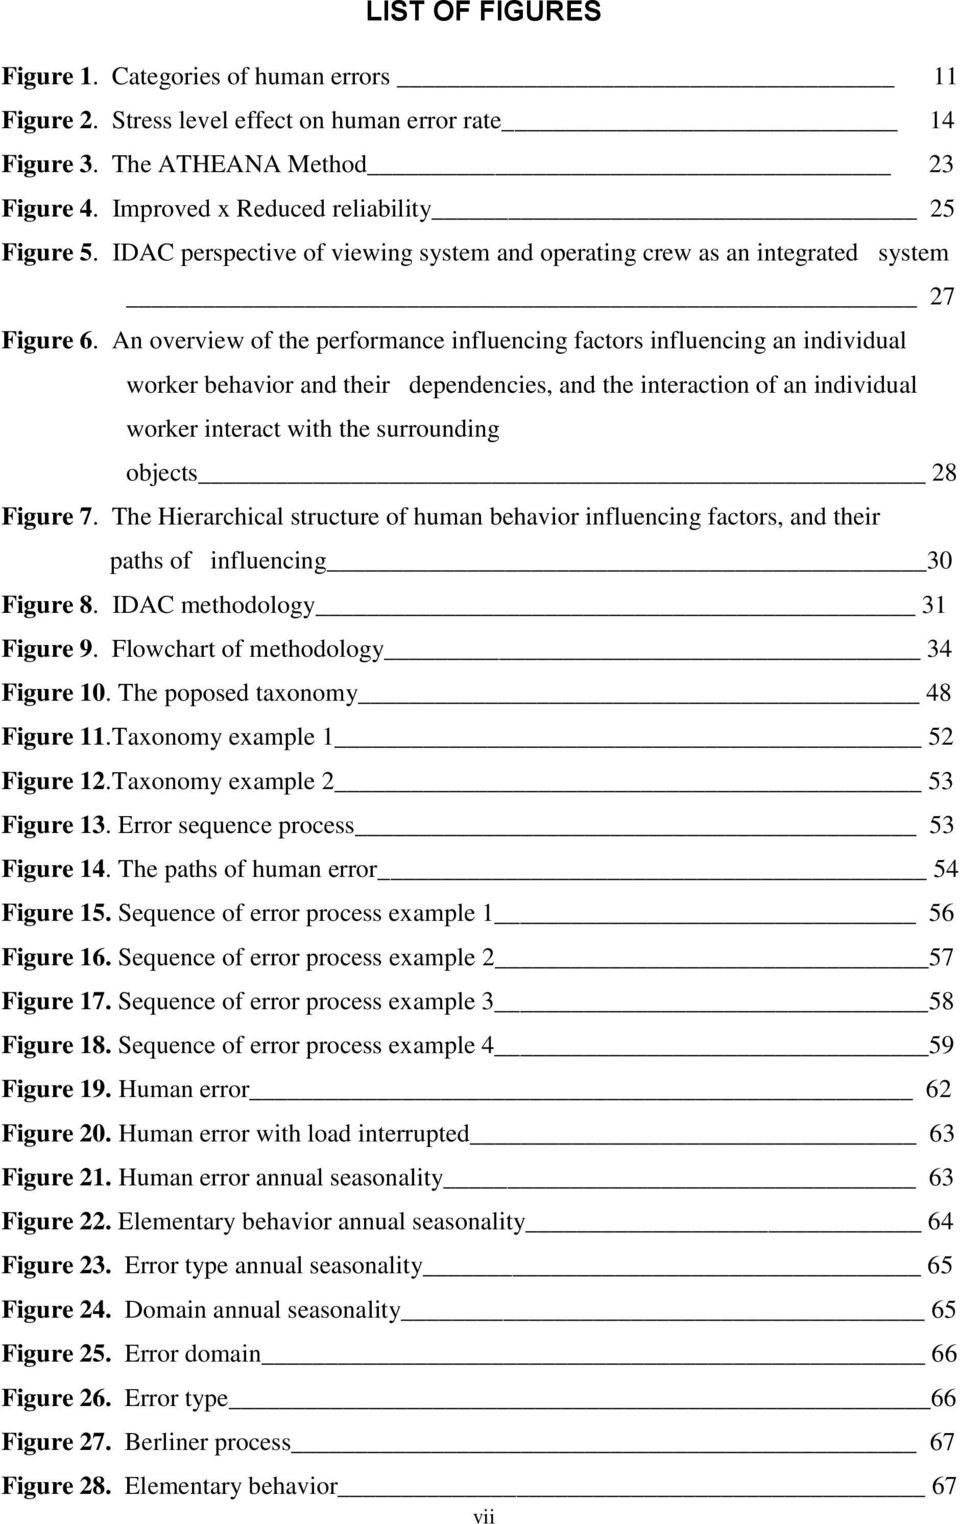 An overview of the performance influencing factors influencing an individual worker behavior and their dependencies, and the interaction of an individual worker interact with the surrounding objects